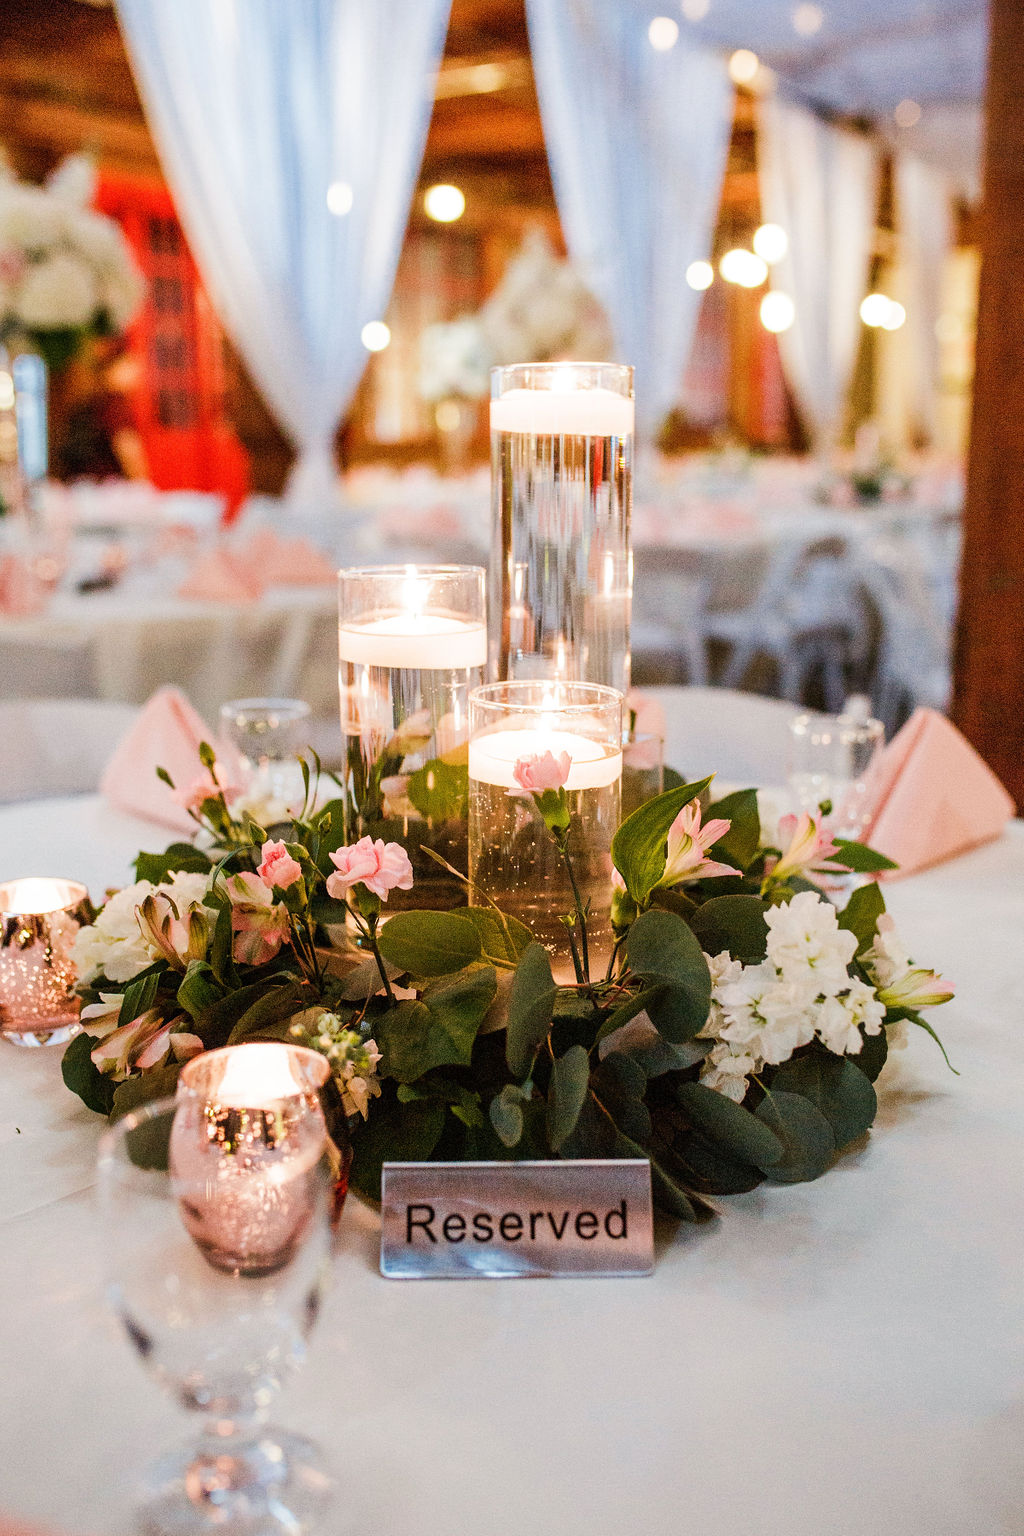 Candles and greenery wedding centerpieces: Wedding at The Mill captured by John Myers Photography featured on Nashville Bride Guide